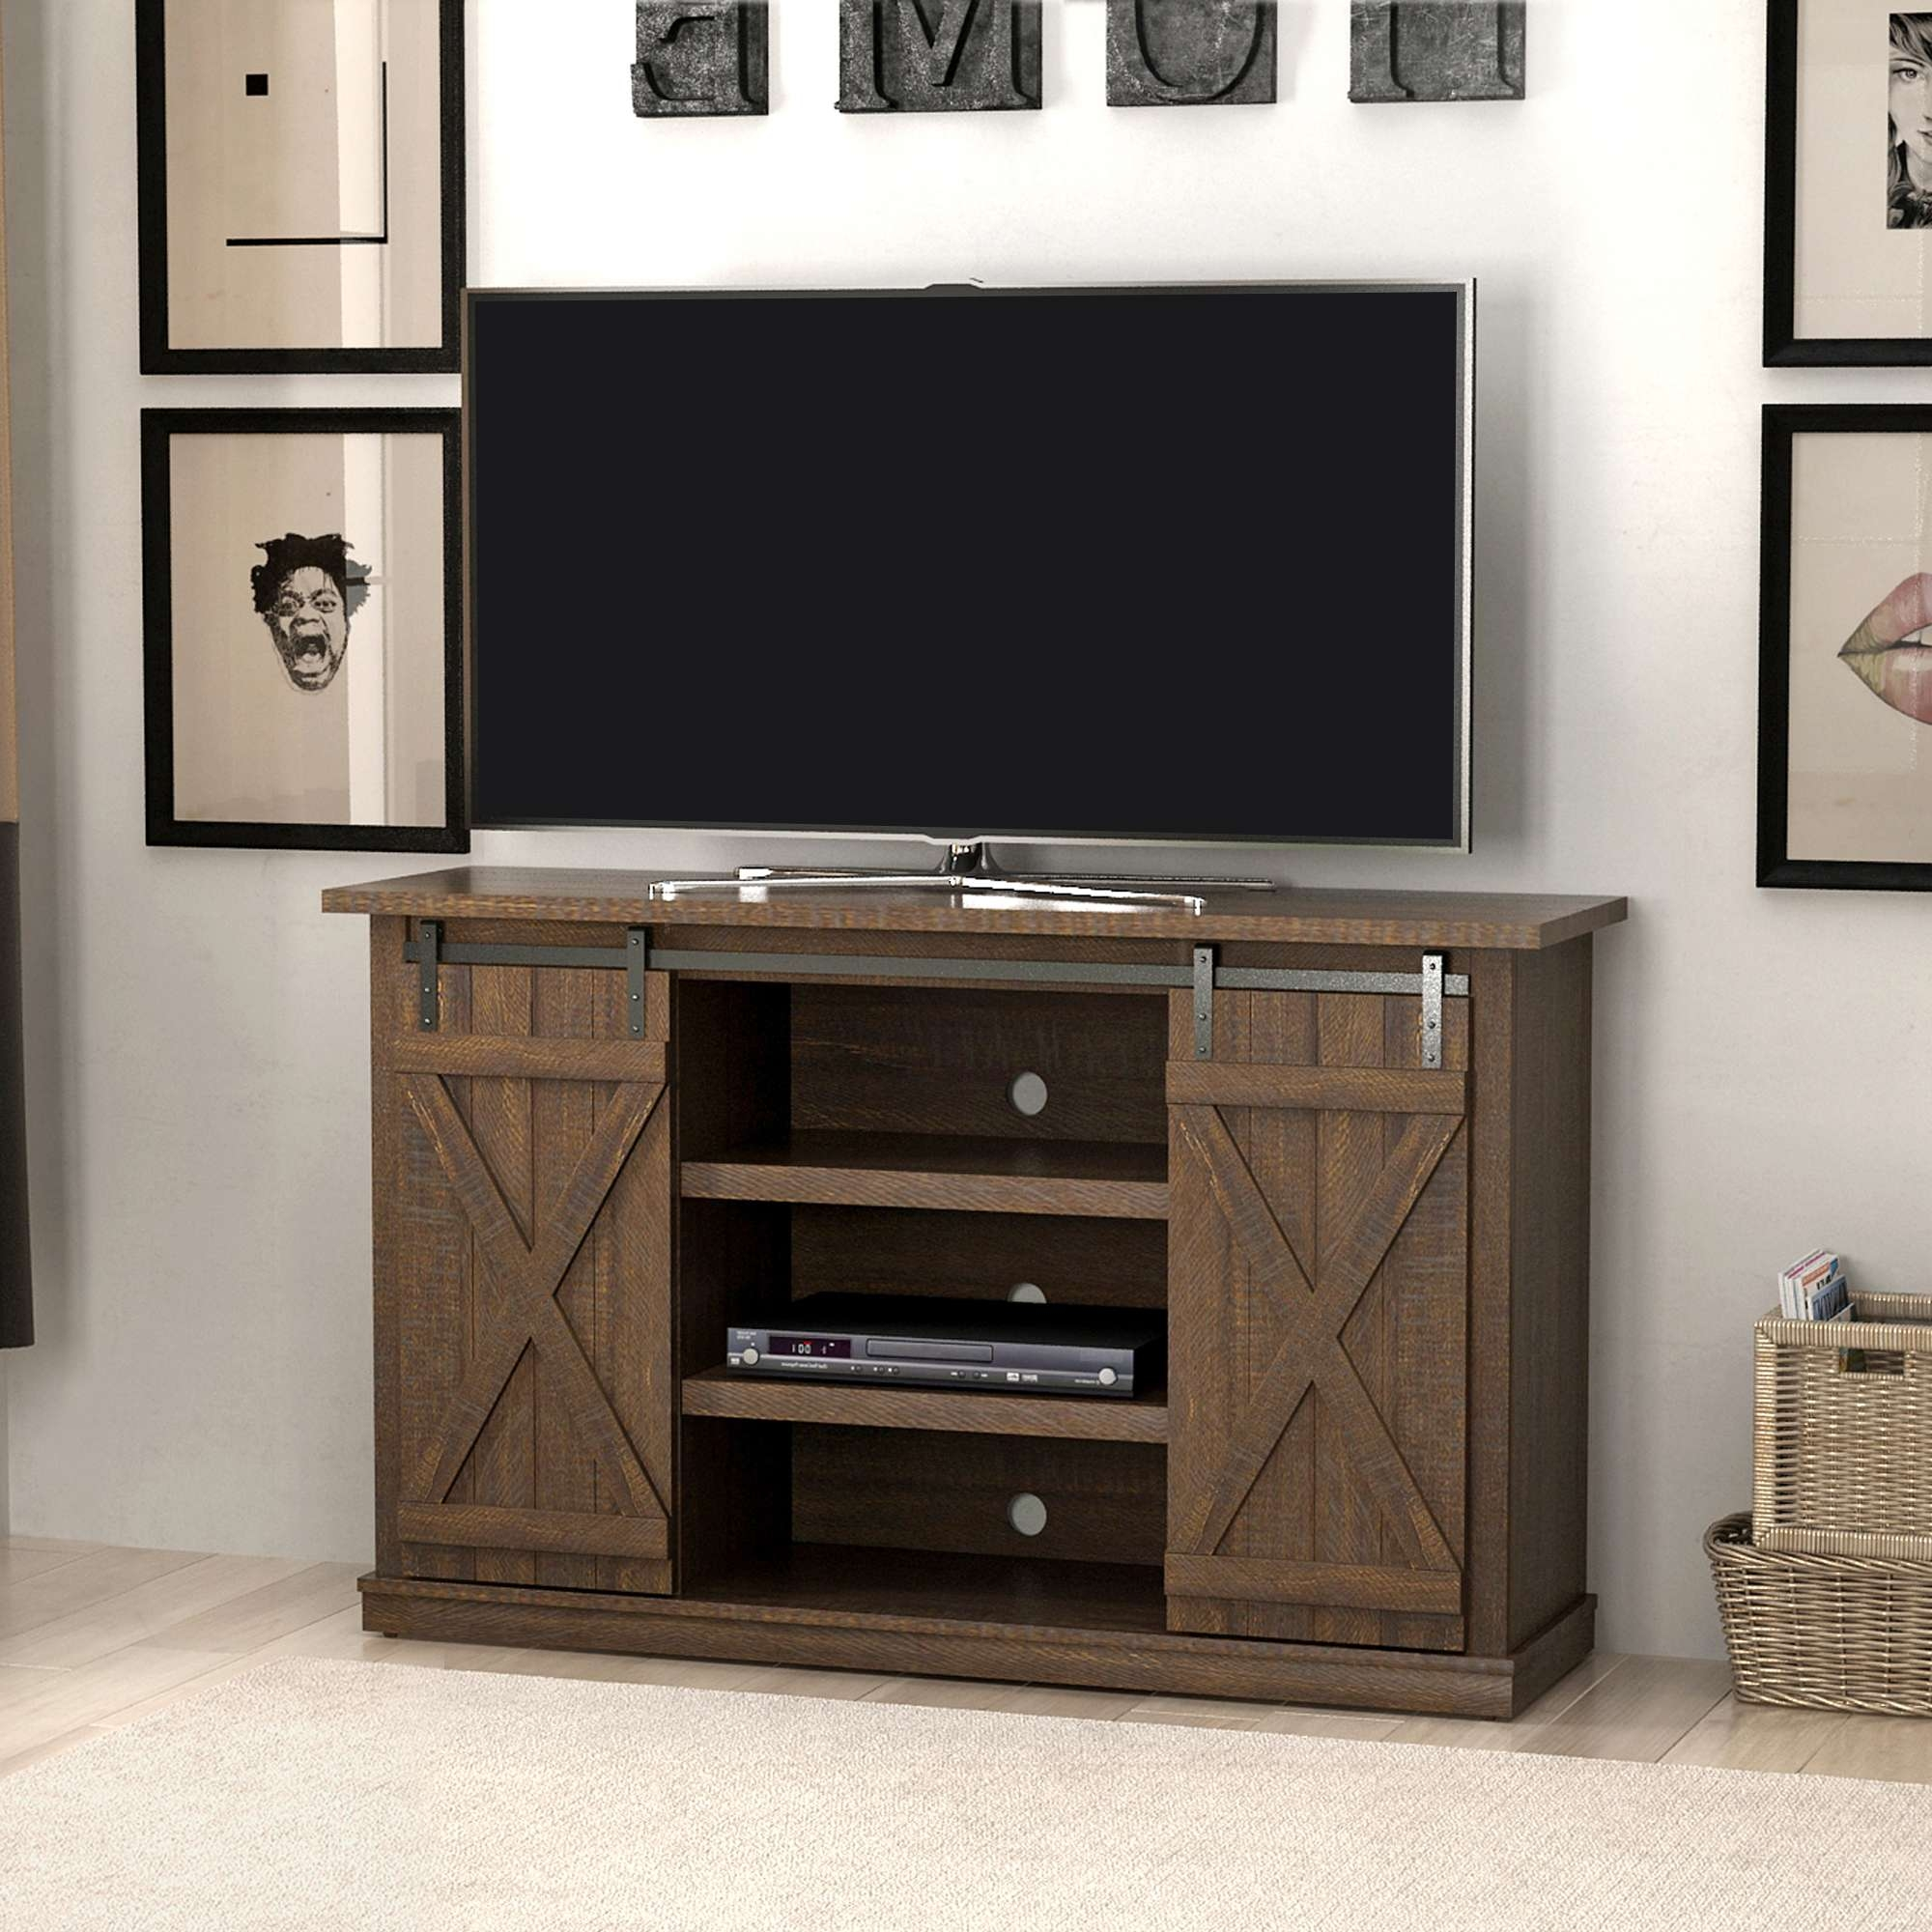 Tv : Cordoba Tv Stands Attractive Cordoba Tv Stand With Mount Inside Cordoba Tv Stands (View 5 of 15)